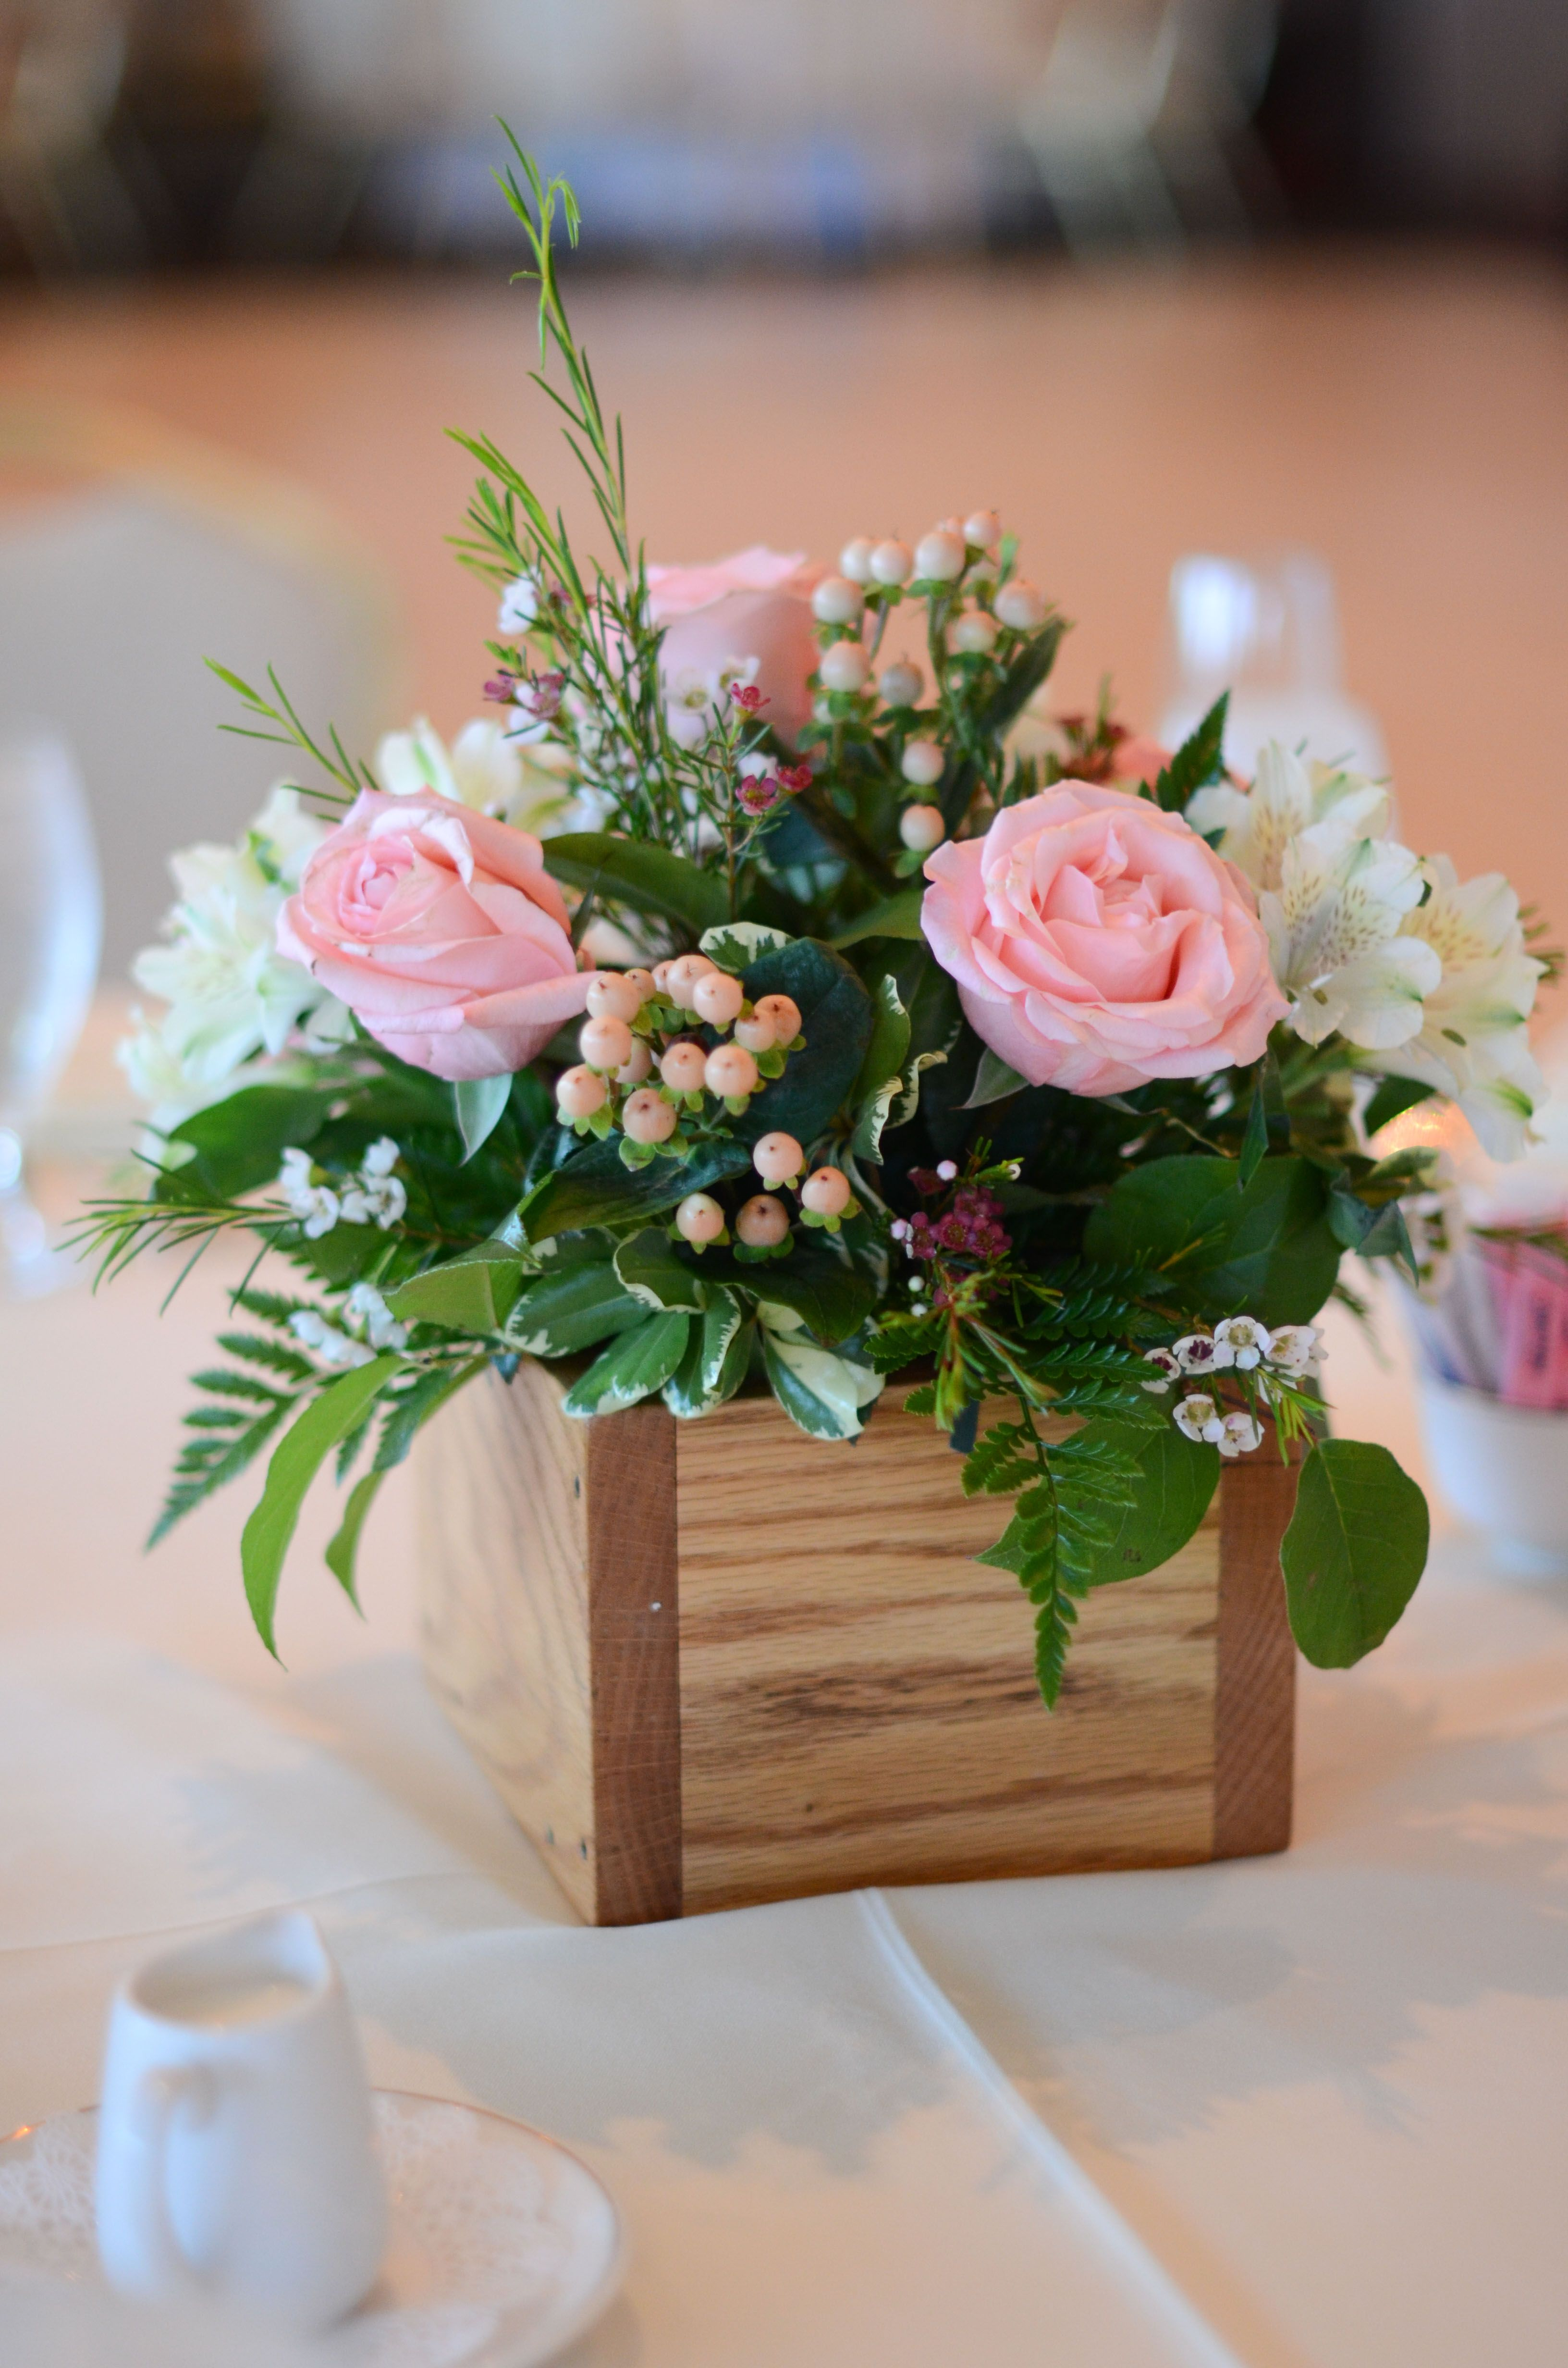 Centros De Mesa Para Bodas Flower Arrangements Diy Floral Arrangements Diy Flower Centerpieces